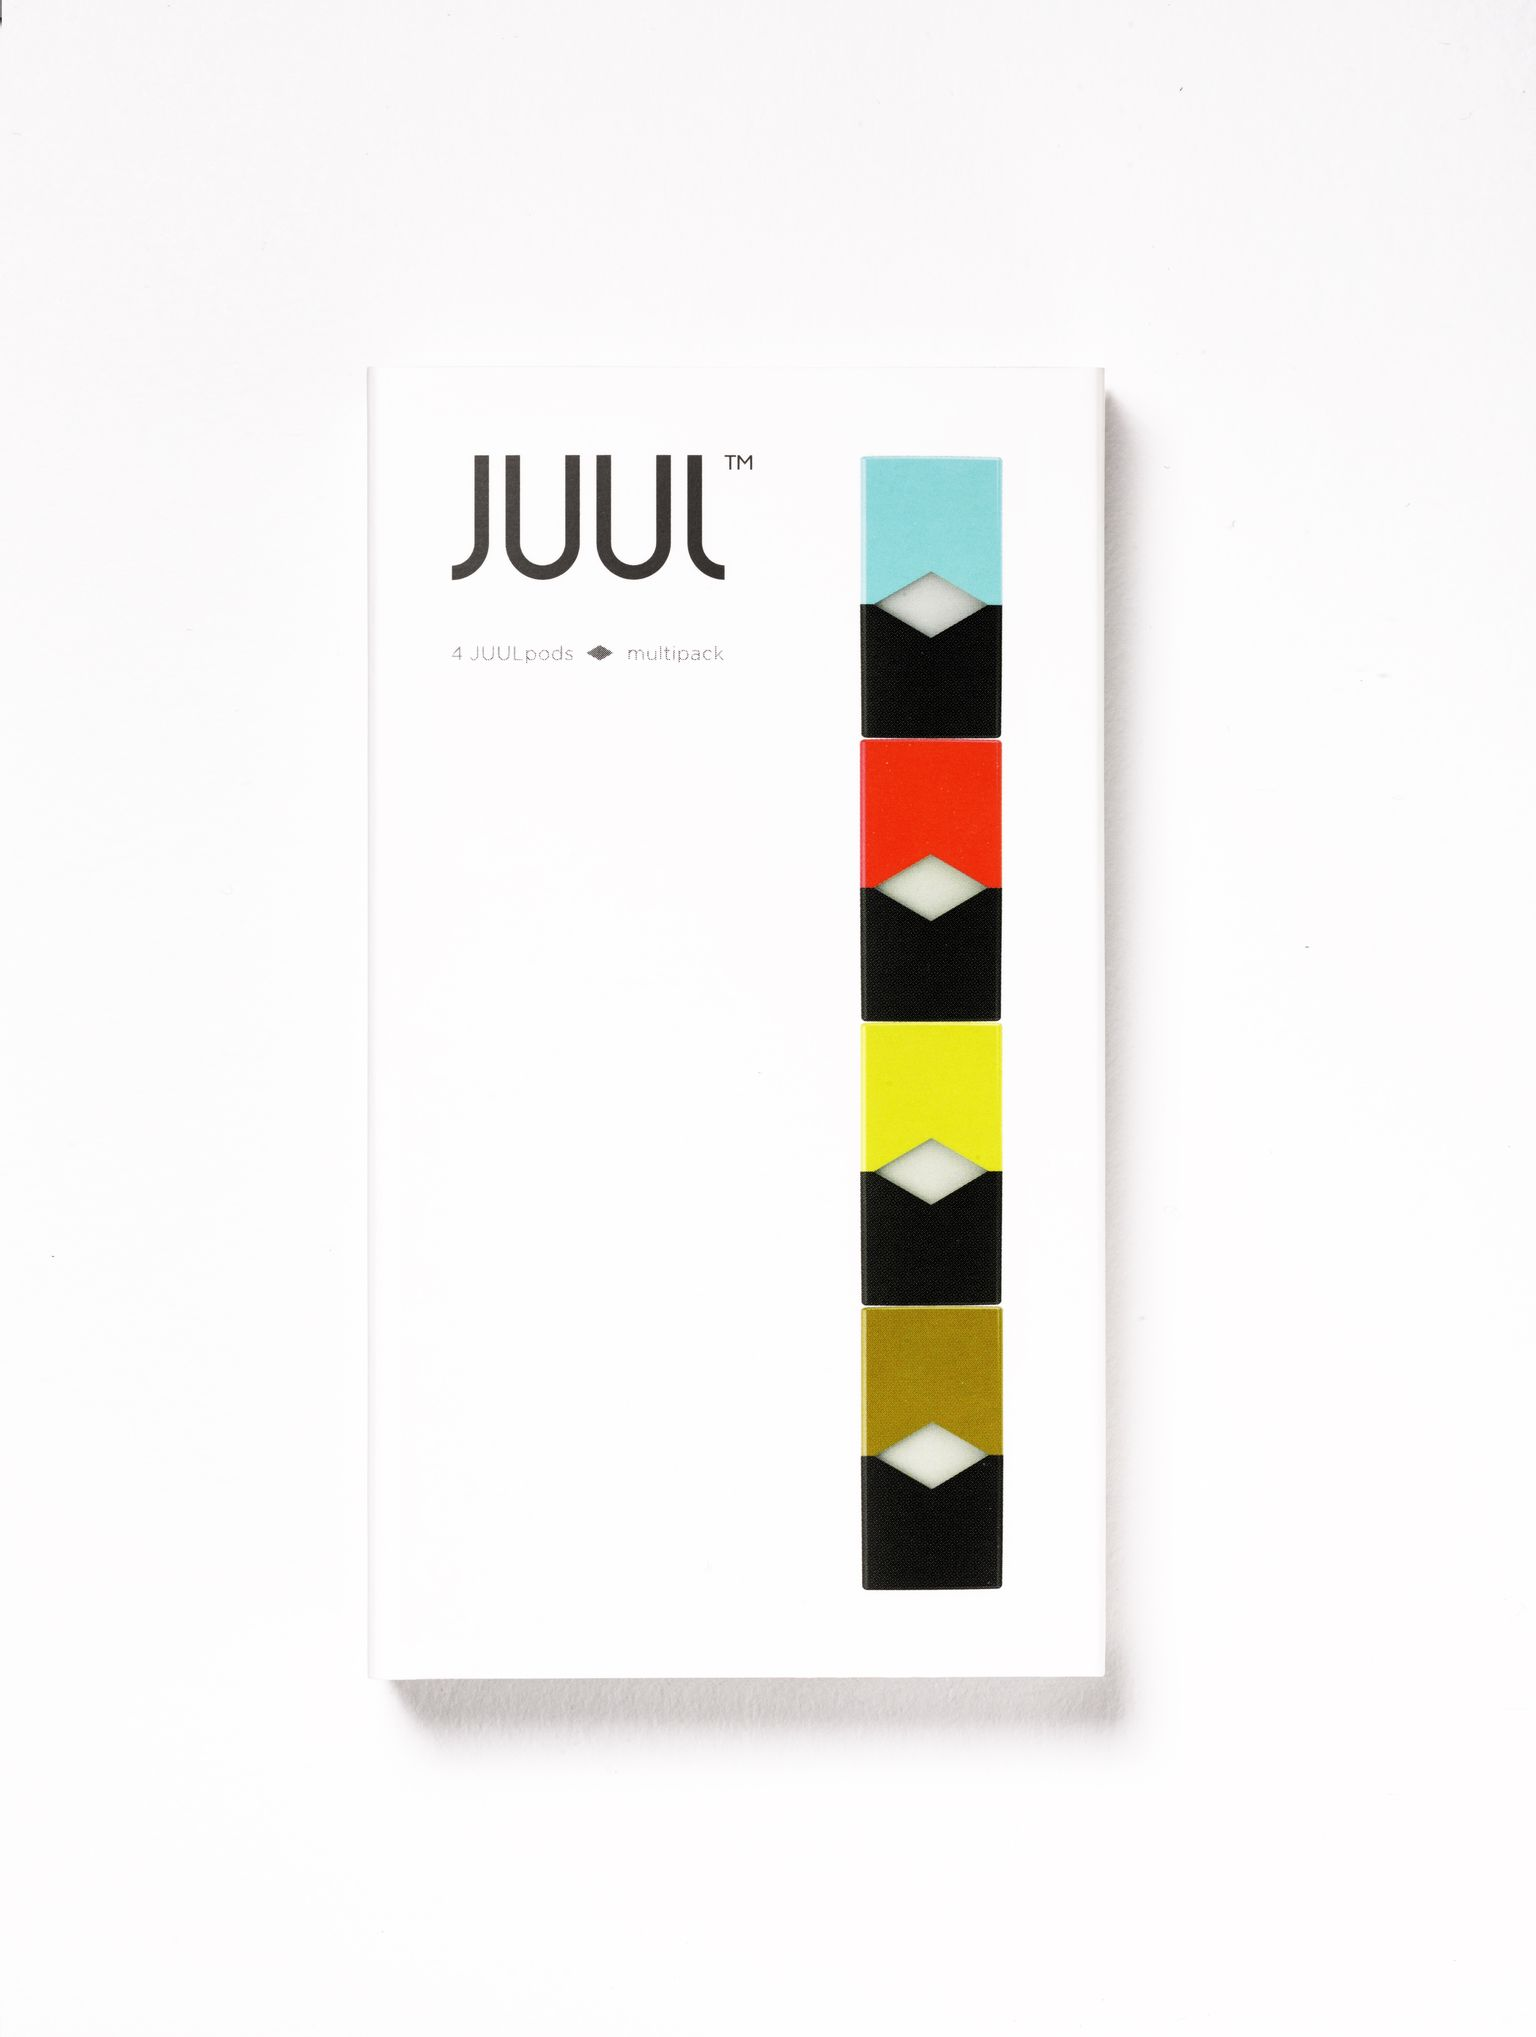 JUUL | iF WORLD DESIGN GUIDE